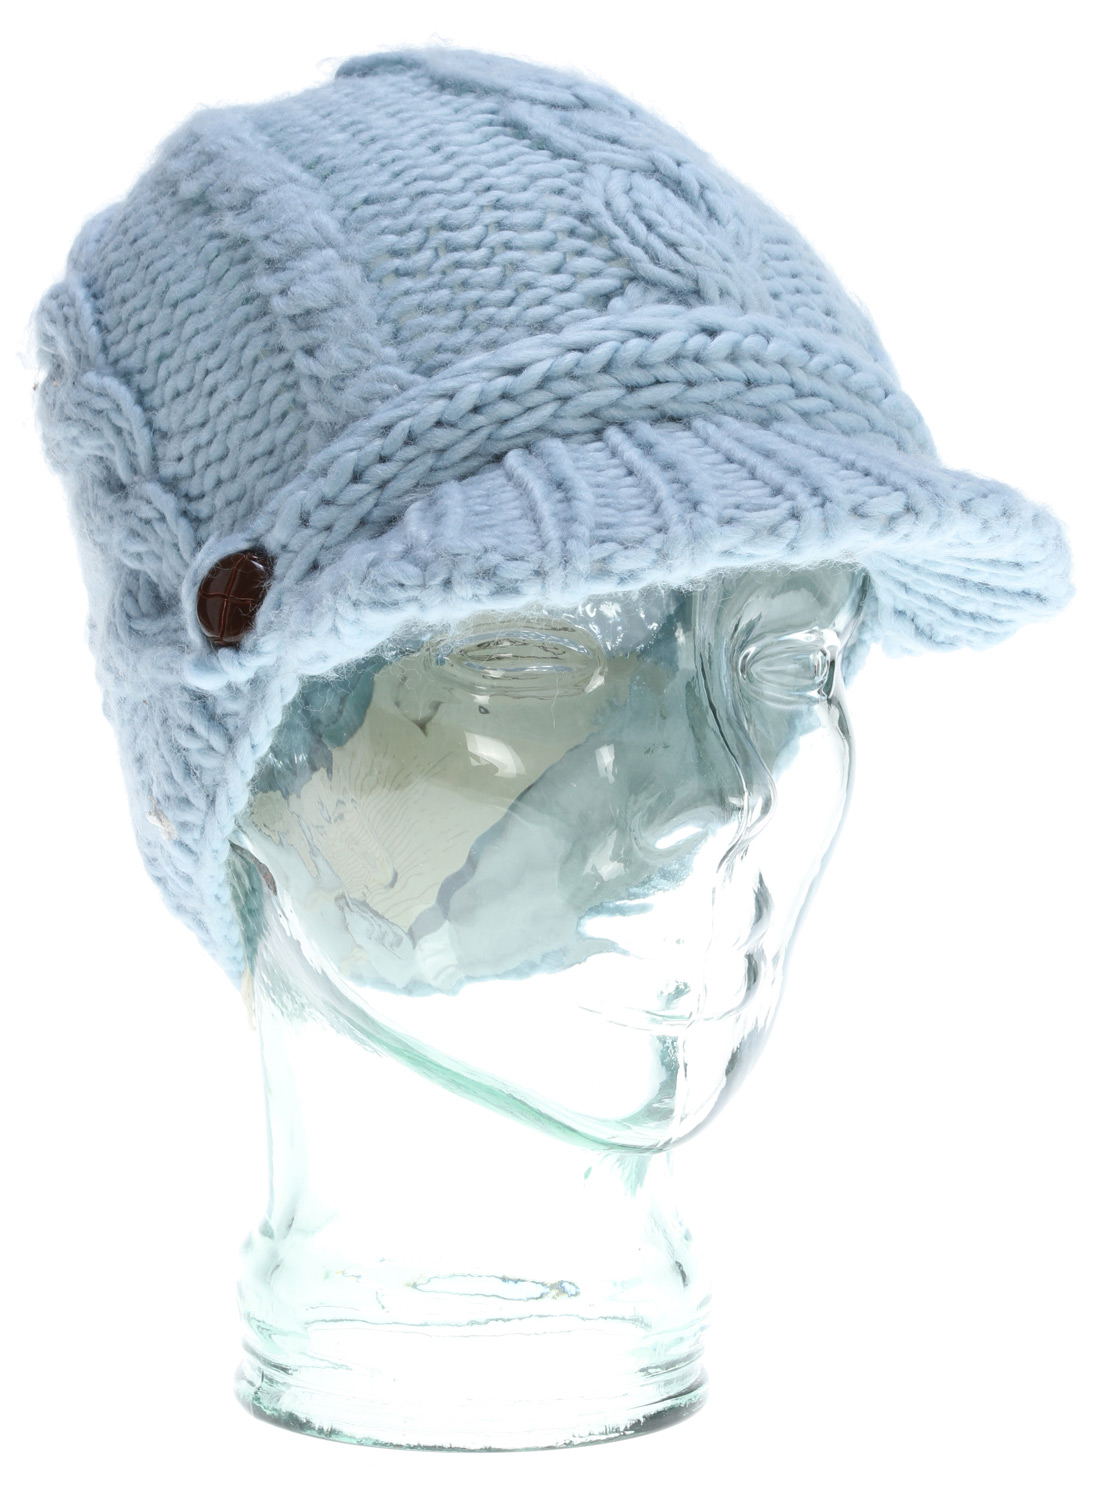 Soft colors and soft fabric make this gently elegant beanie a cozy offering.Key Features of the Prana Nina Beanie: Cable knit visor beanie style Fleece inner band Soft and cozy with light color offering Front band with button tab trim detail Standard Fit 50% Wool / 50% Acrylic - $26.95